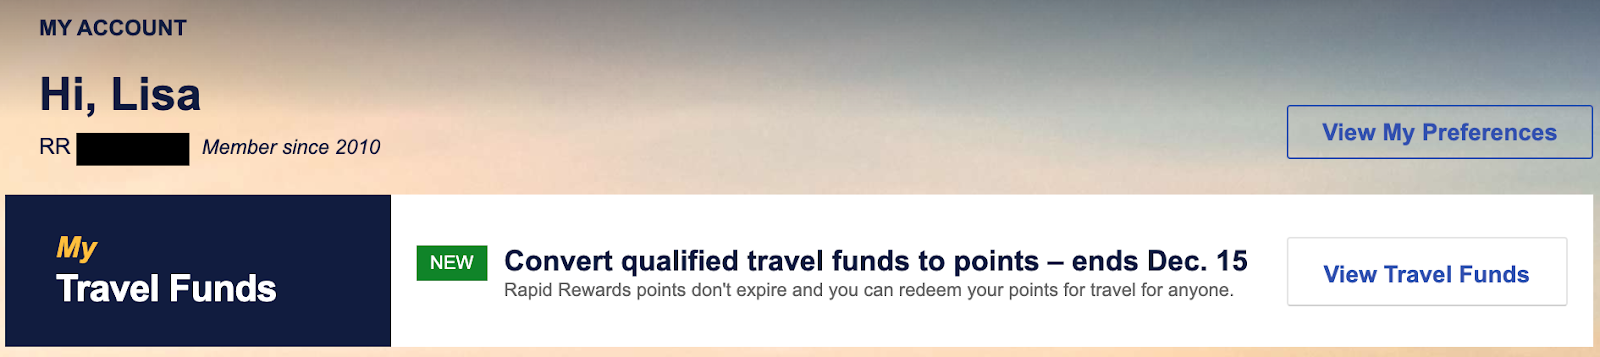 Screenshot of Southwest Travel Funds My Account Page